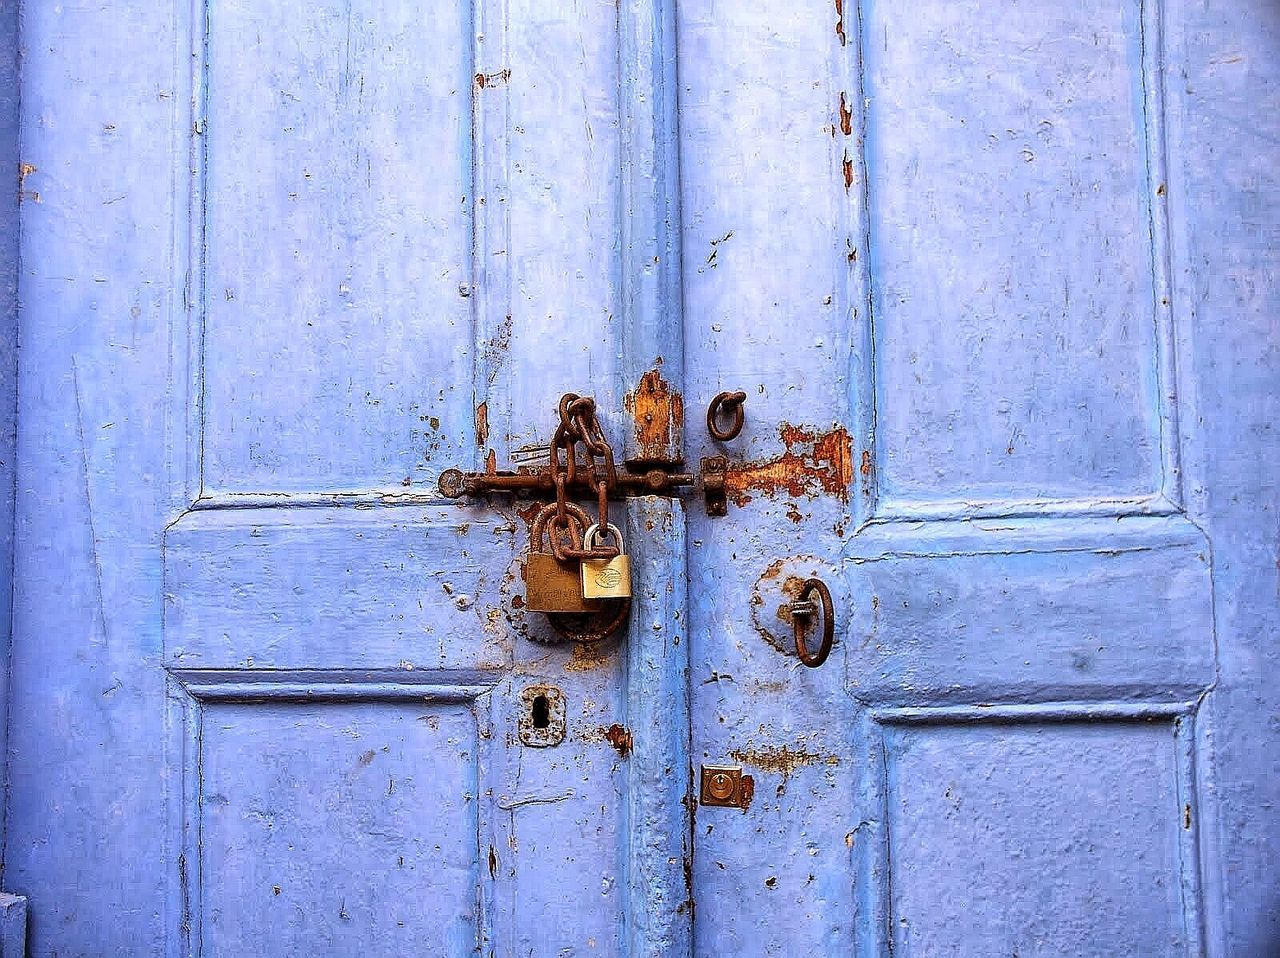 door, closed, outdoors, day, protection, close-up, wood - material, no people, safety, weathered, full frame, rusty, latch, backgrounds